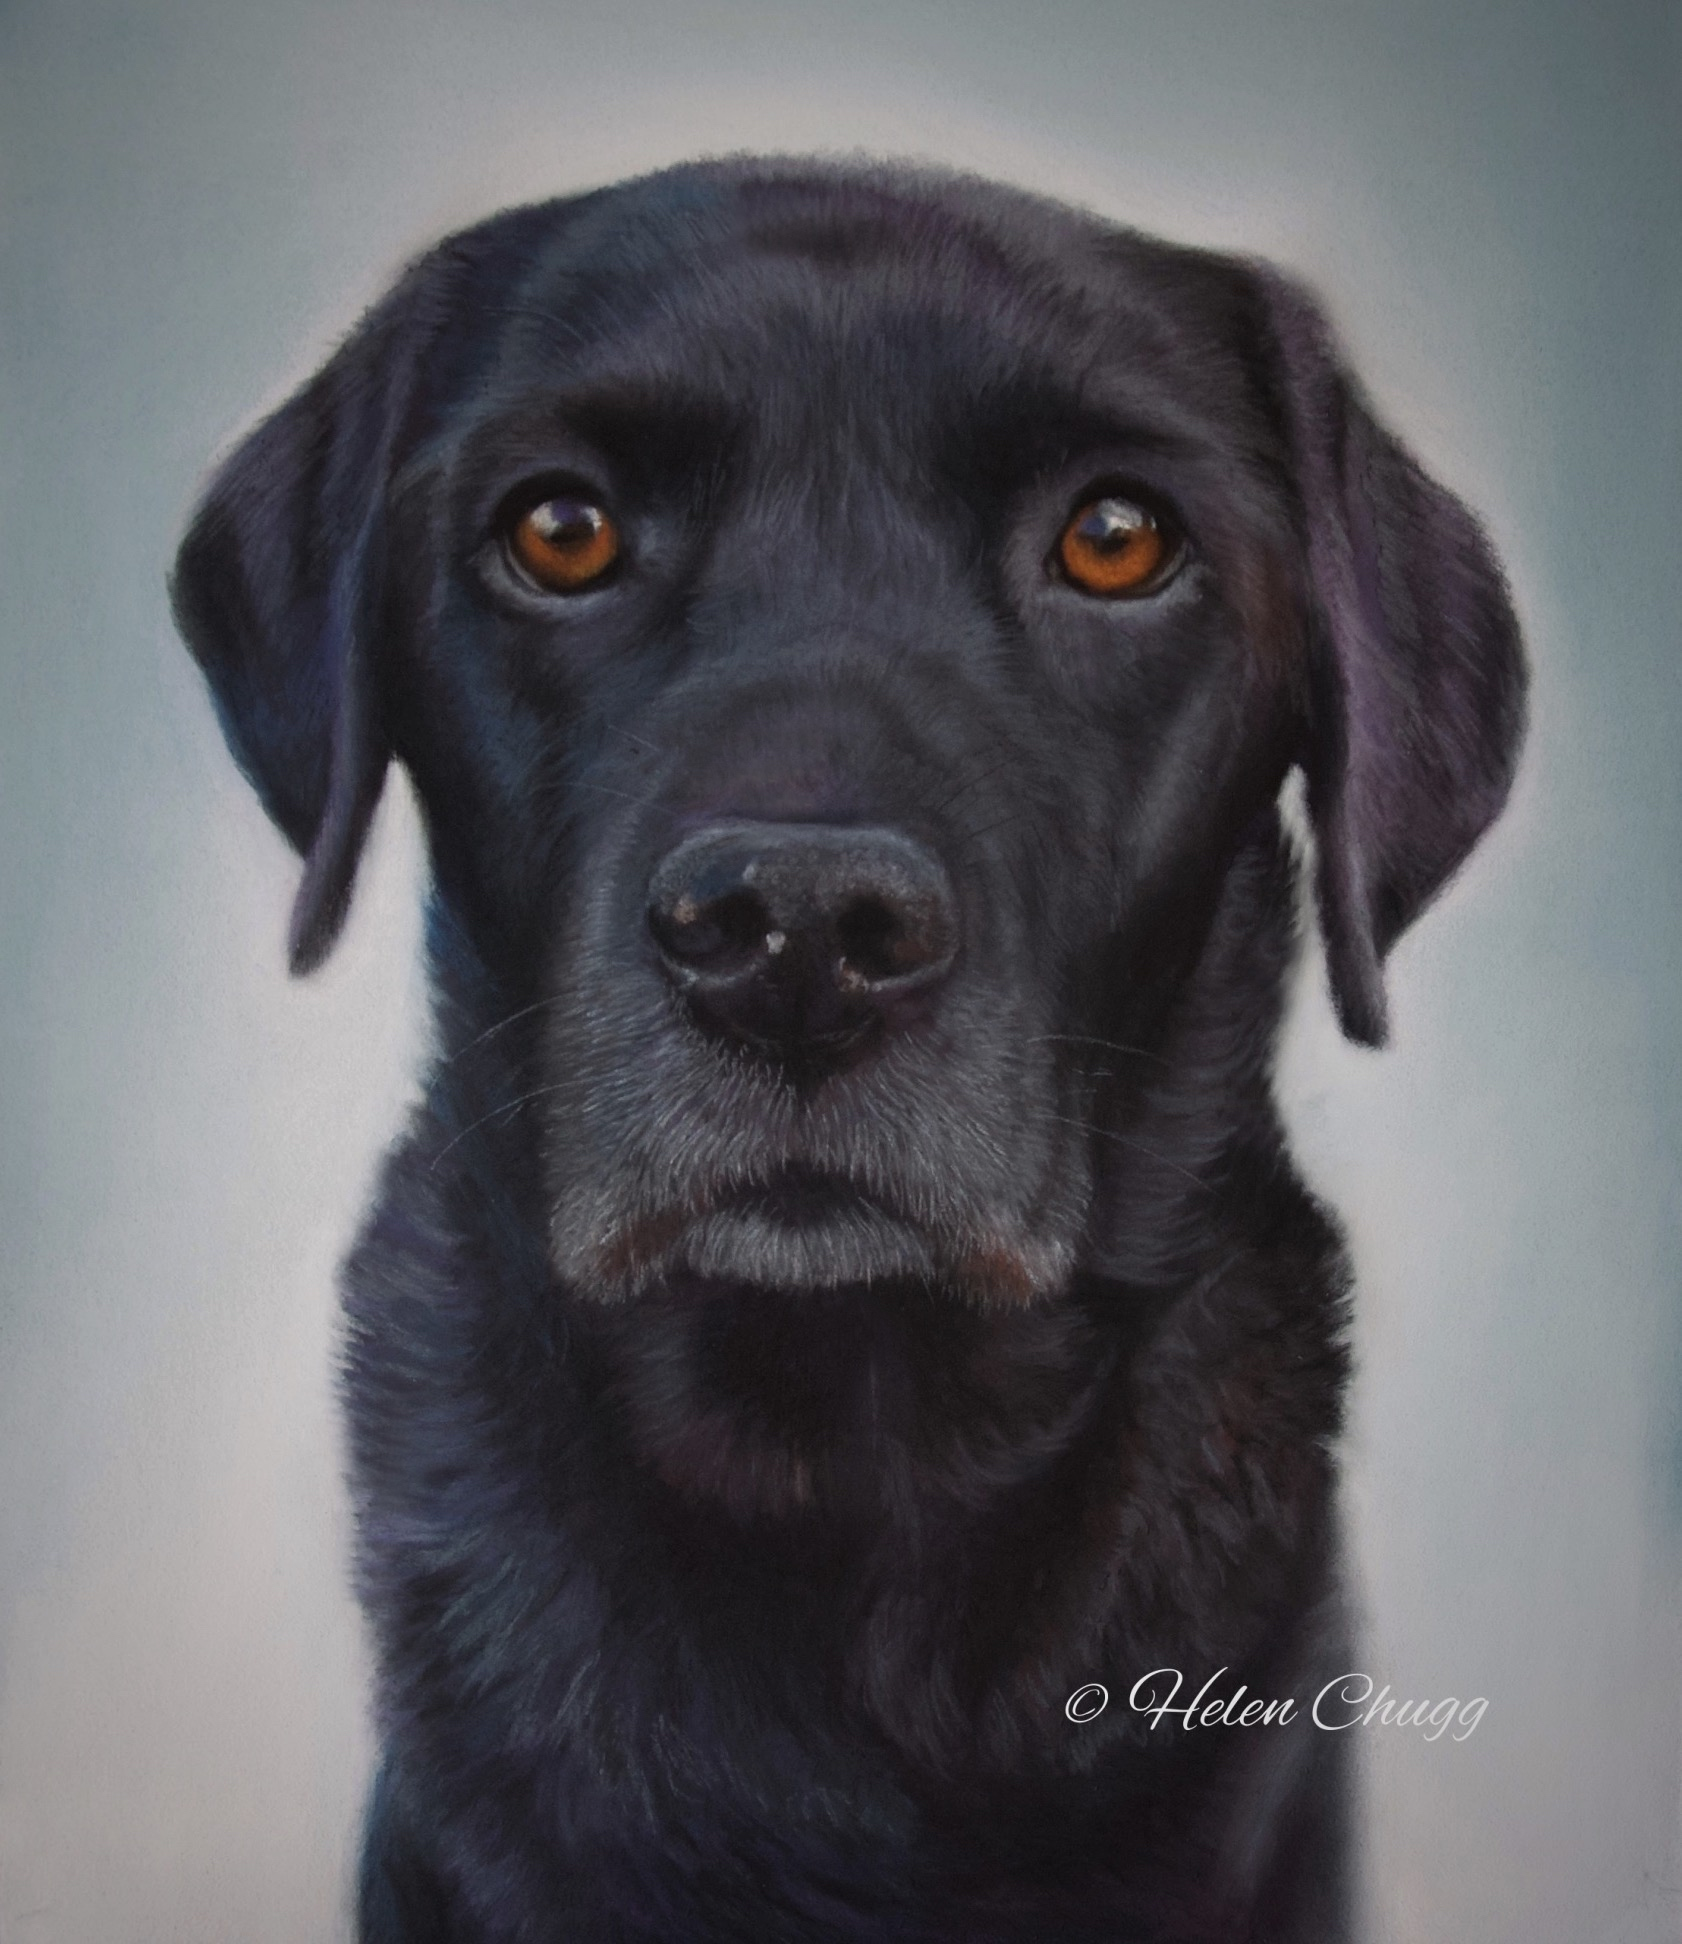 pastel painting of a realistic looking black dog by Pet Portrait Artist